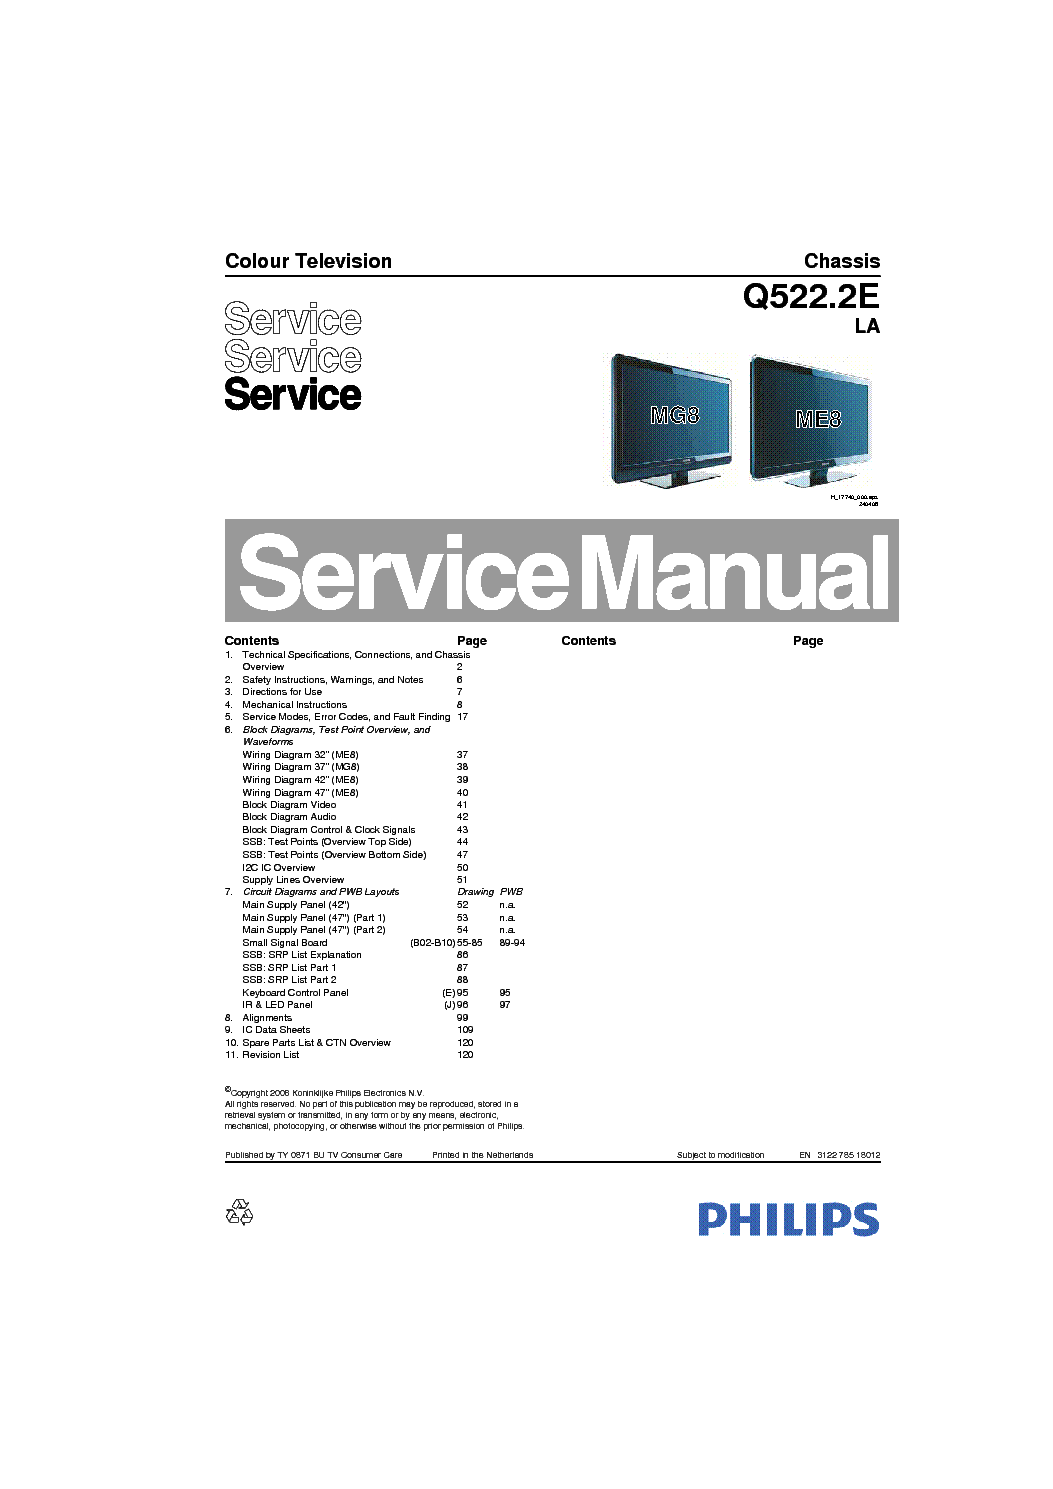 PHILIPS CHASSIS Q522 2E LA Service Manual download